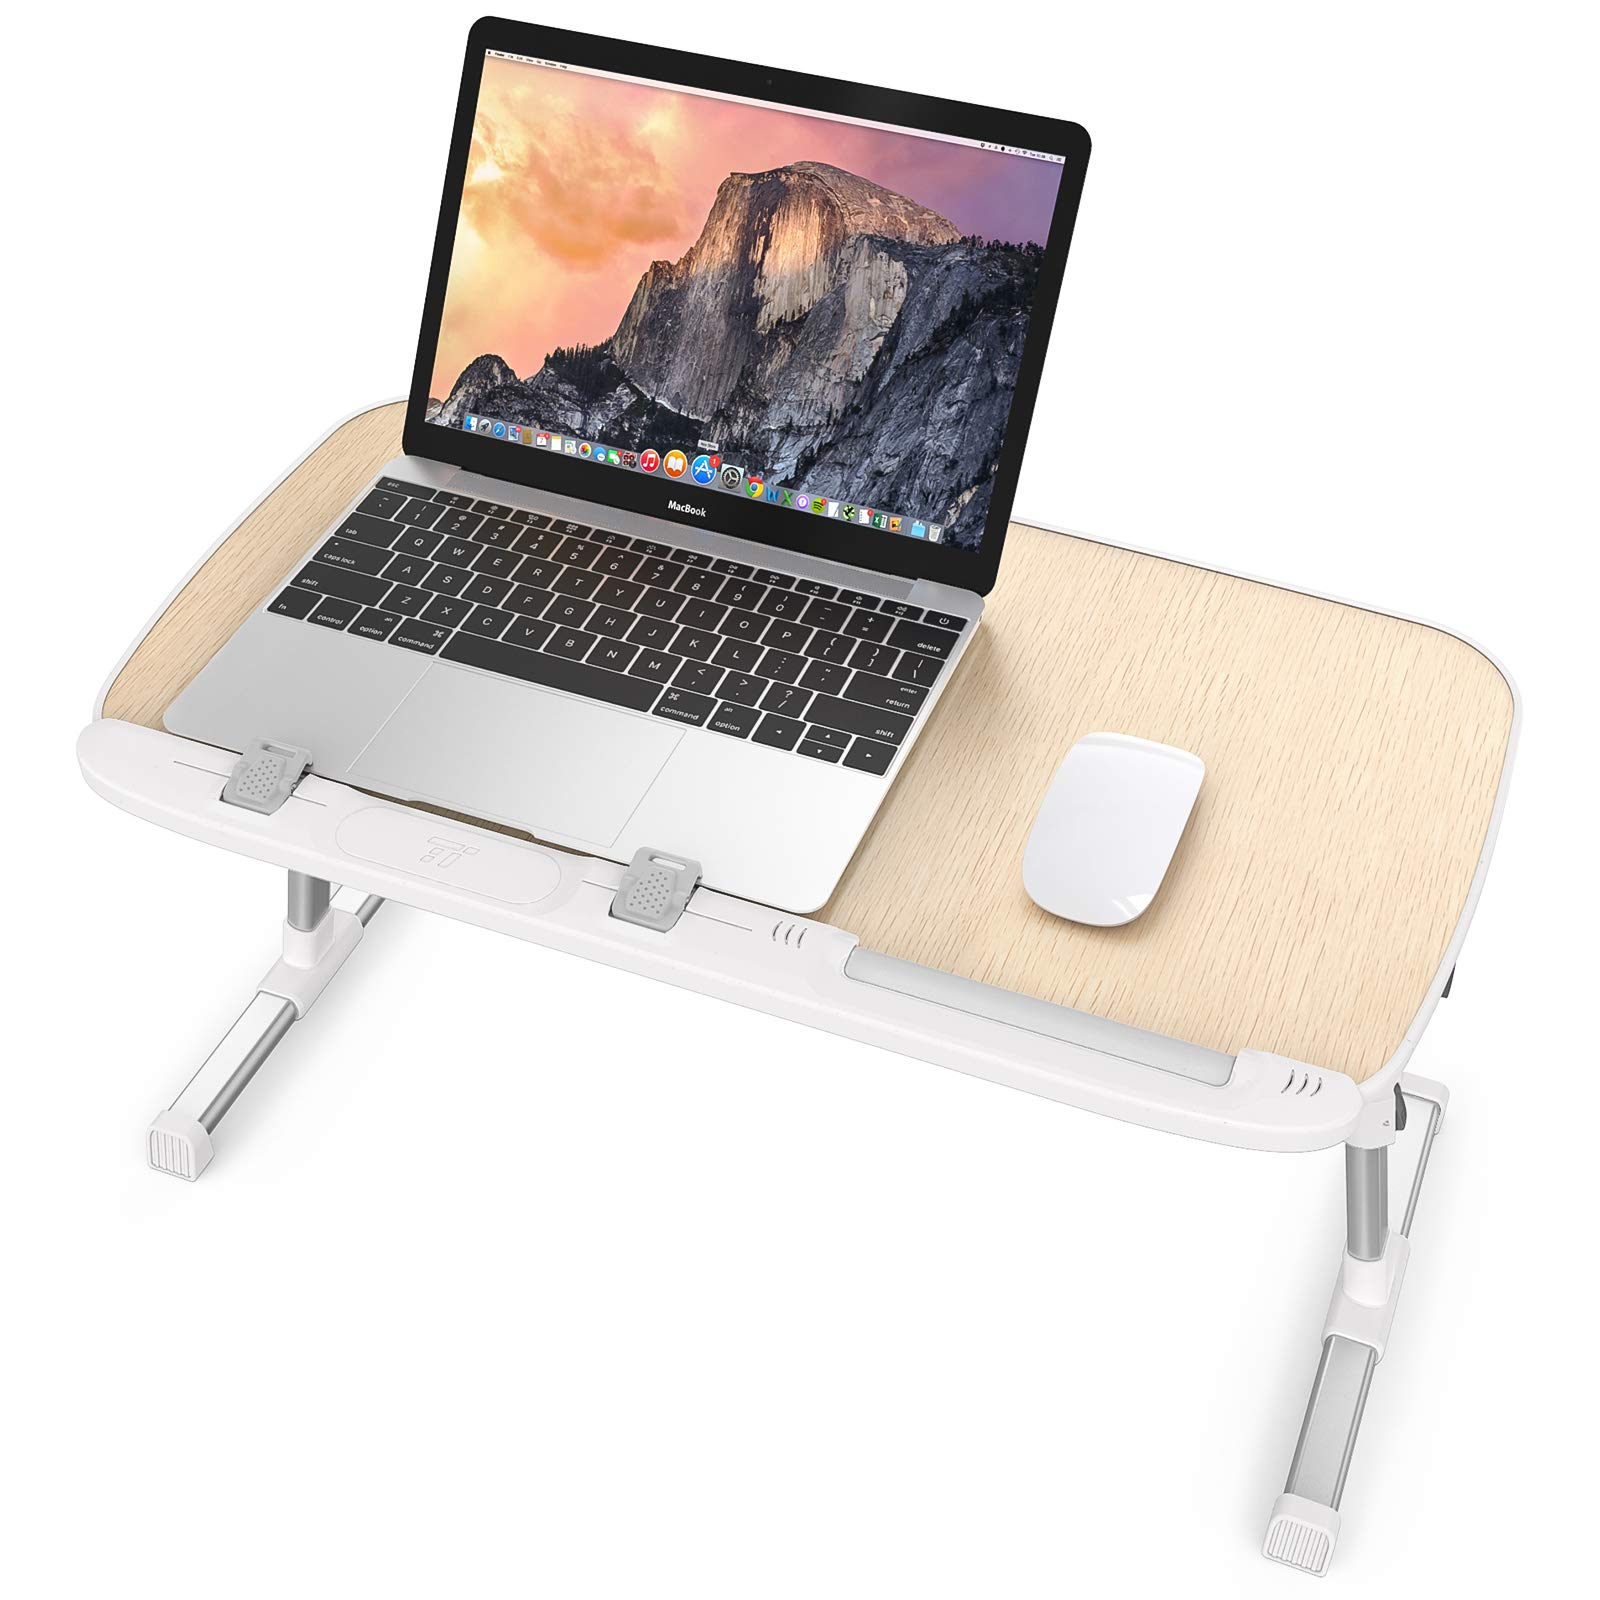 Laptop Desk for Bed, TaoTronics Lap Desks Bed Trays for Eating and Laptops Stand Lap Table, Adjustable Computer Tray for Bed, Foldable Bed Desk for Laptop and Writing in Sofa and Couch Wood by TaoTronics